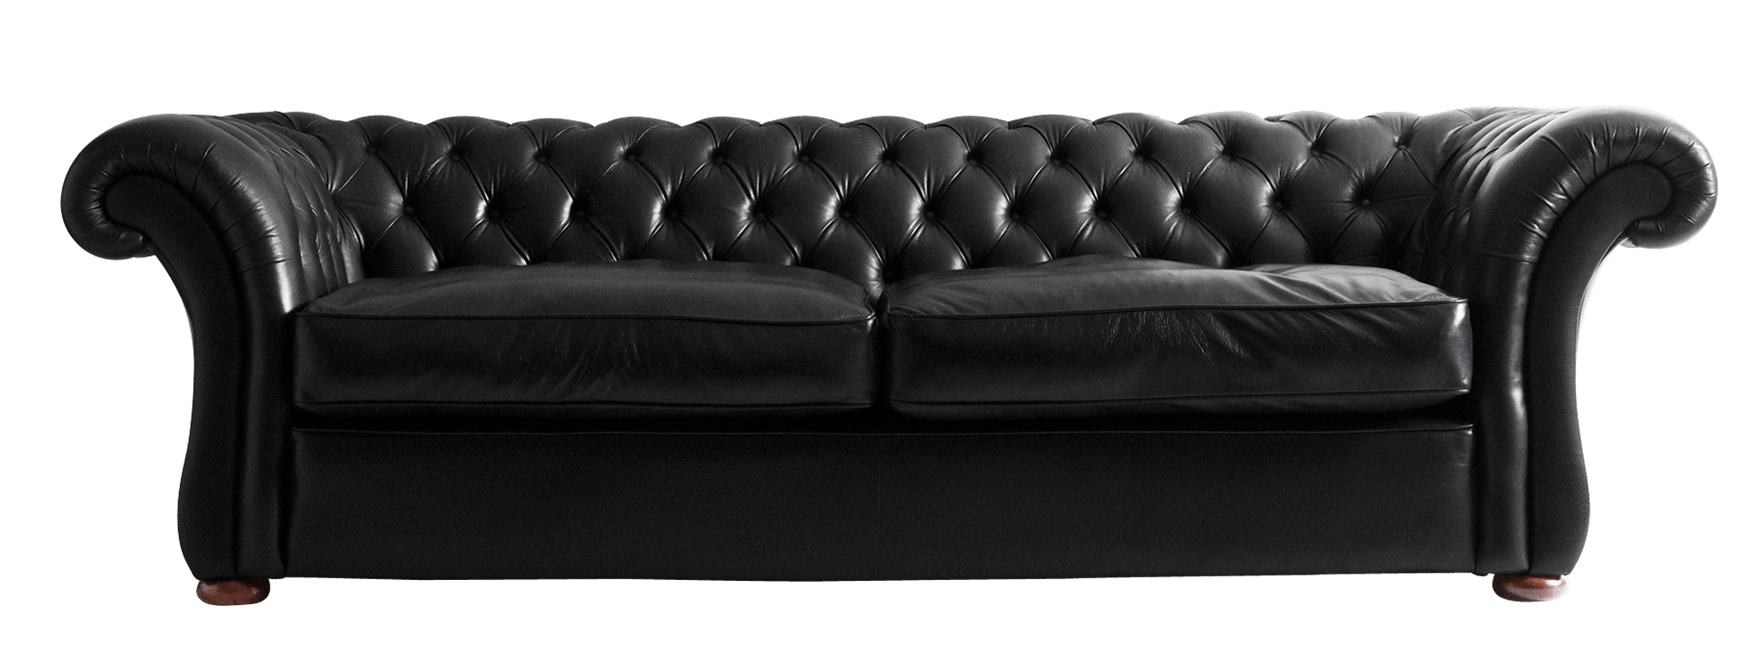 Black Leather Sofa transparent PNG - StickPNG